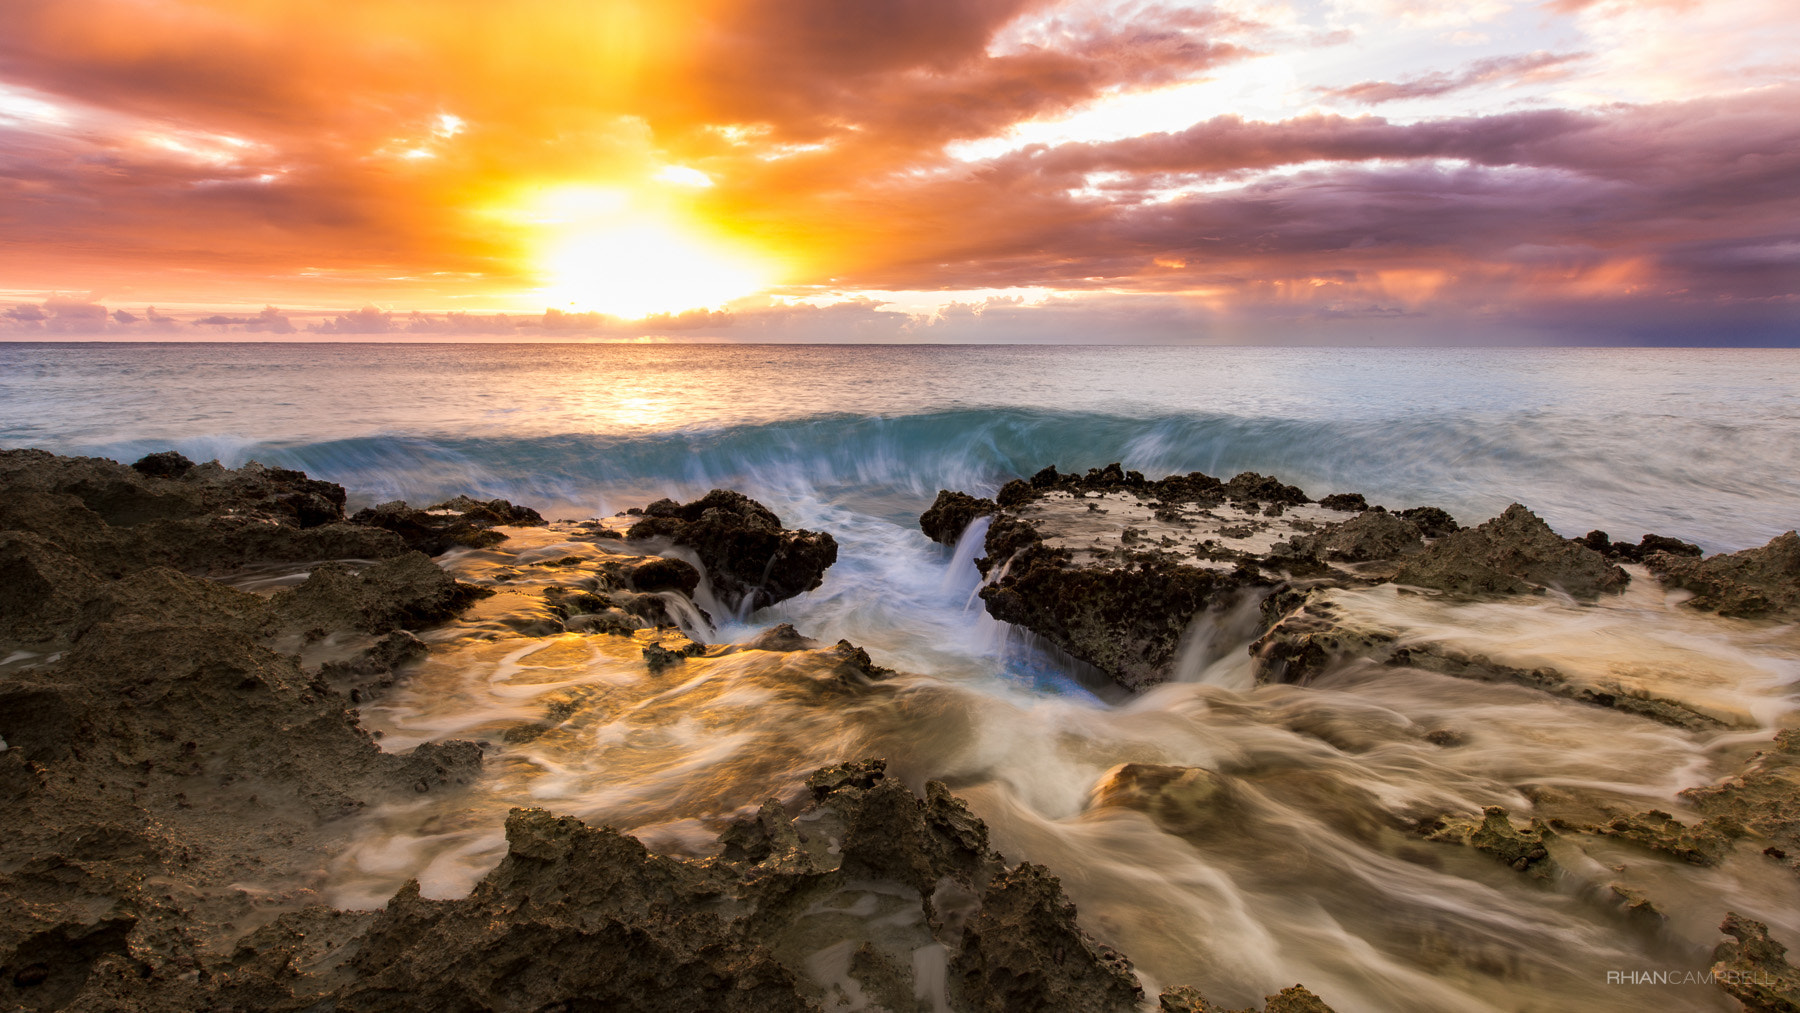 Photograph Hole in the Earth by Rhian Campbell on 500px